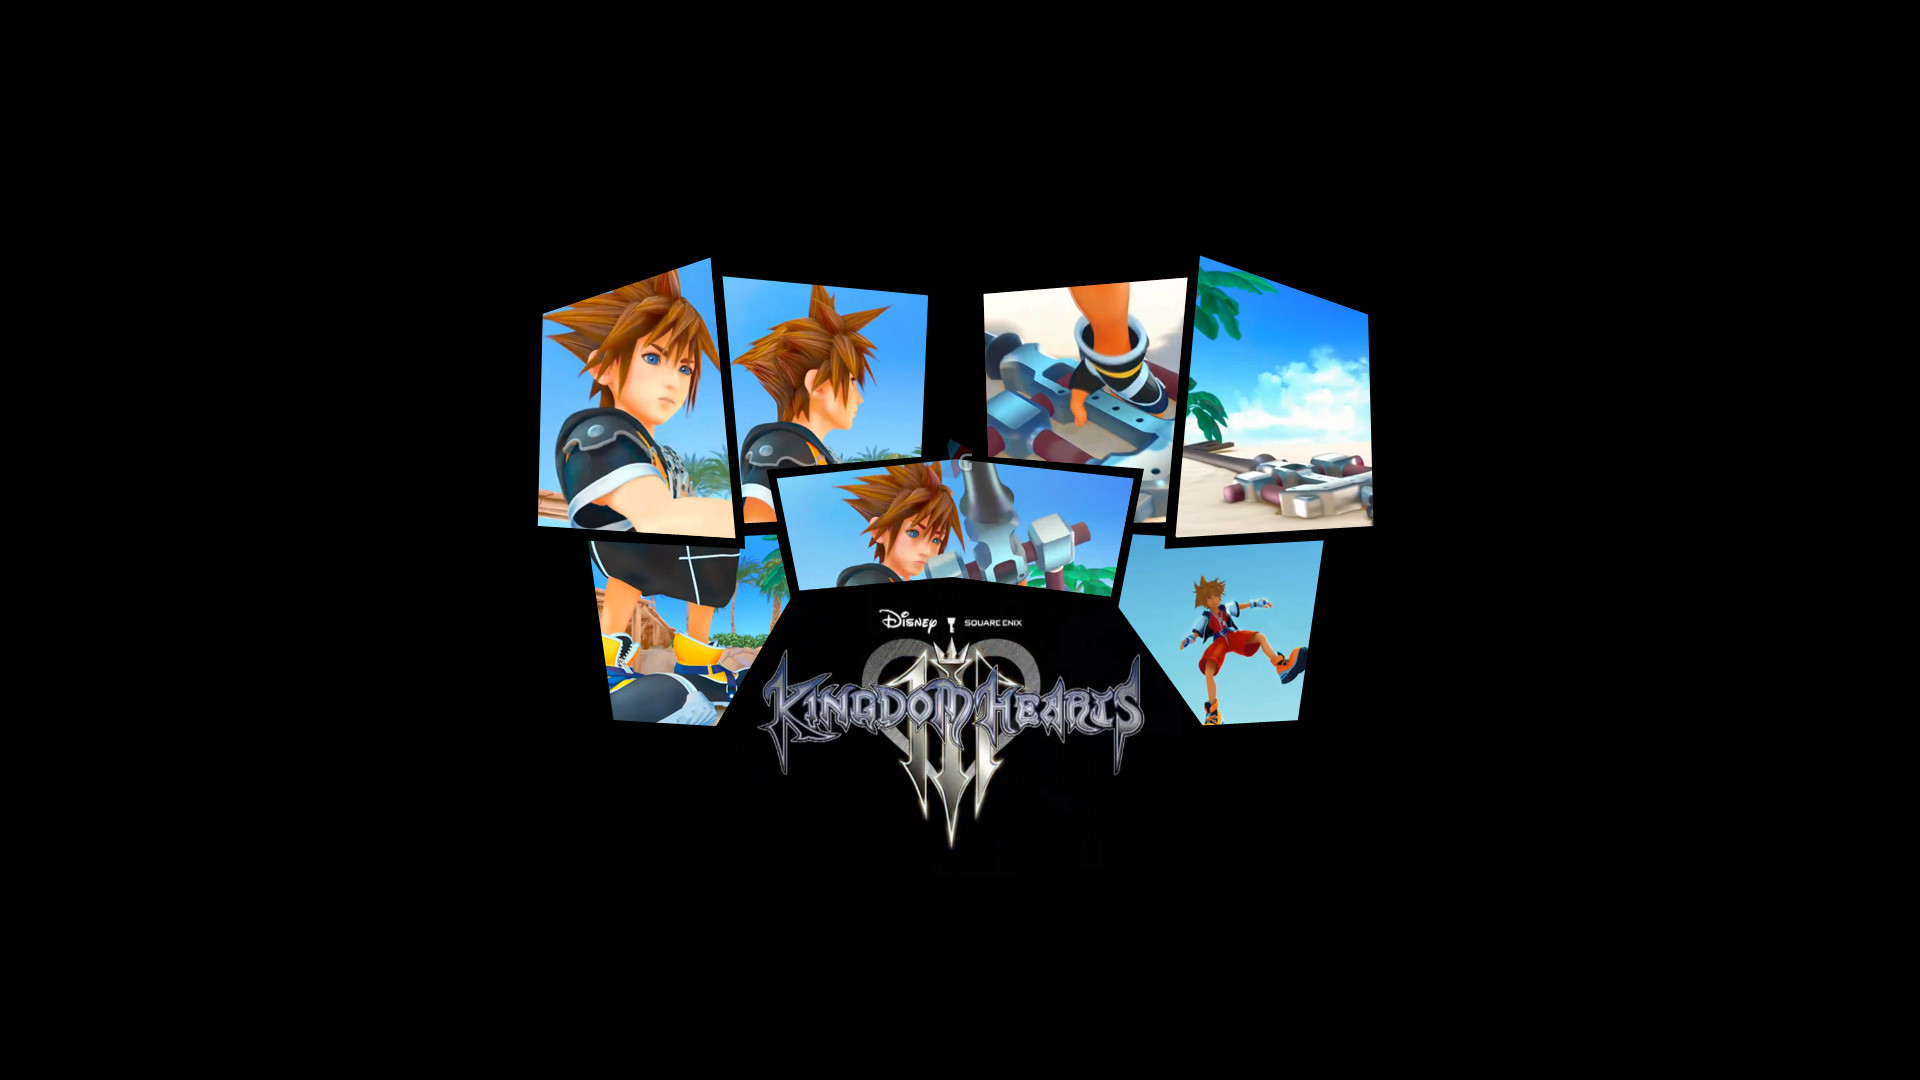 1920x1080 kingdom hearts 3. Download Kingdom Hearts 3 Sora Wallpaper ...